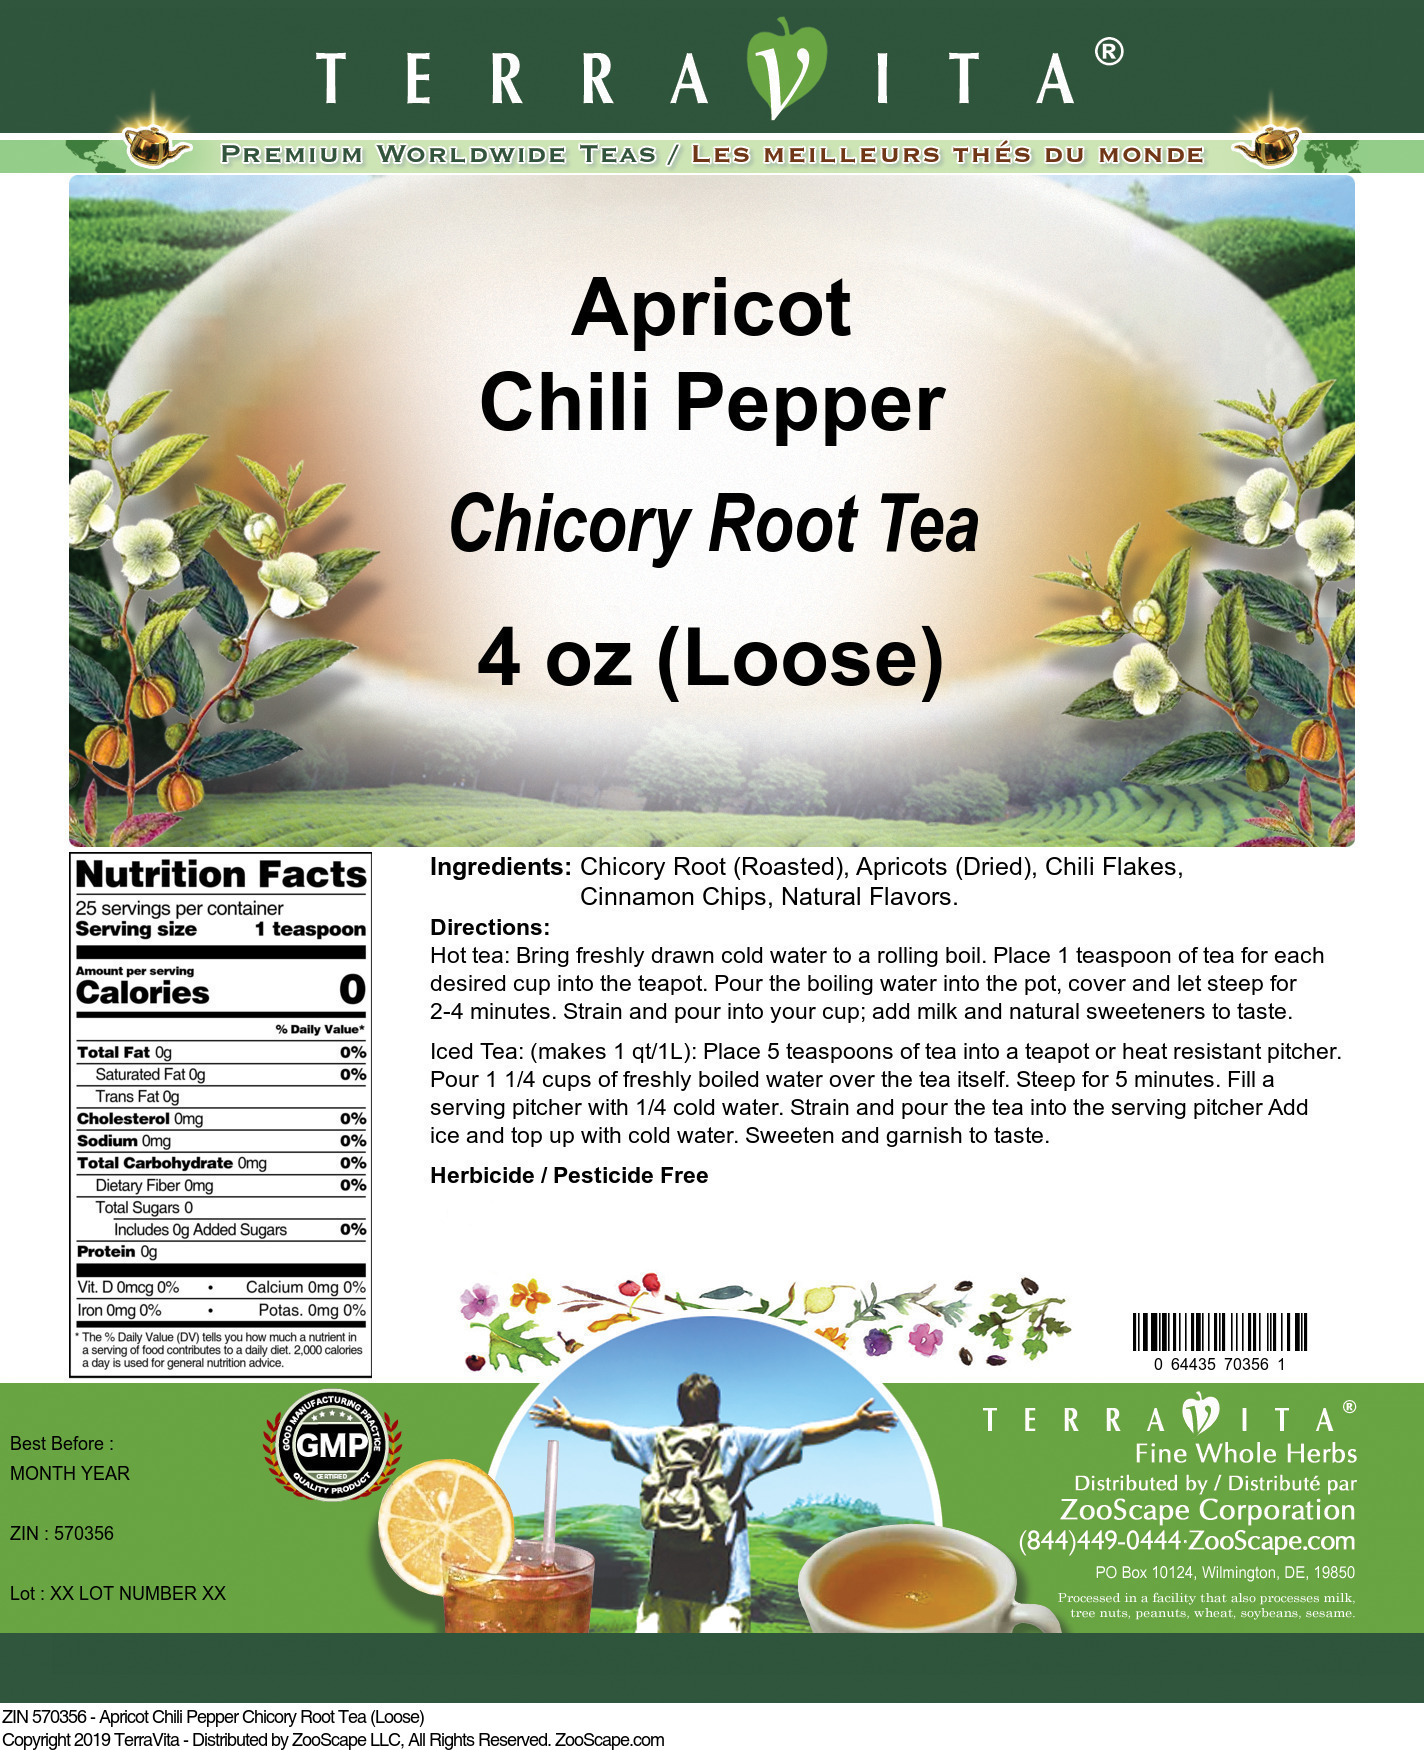 Apricot Chili Pepper Chicory Root Tea (Loose)